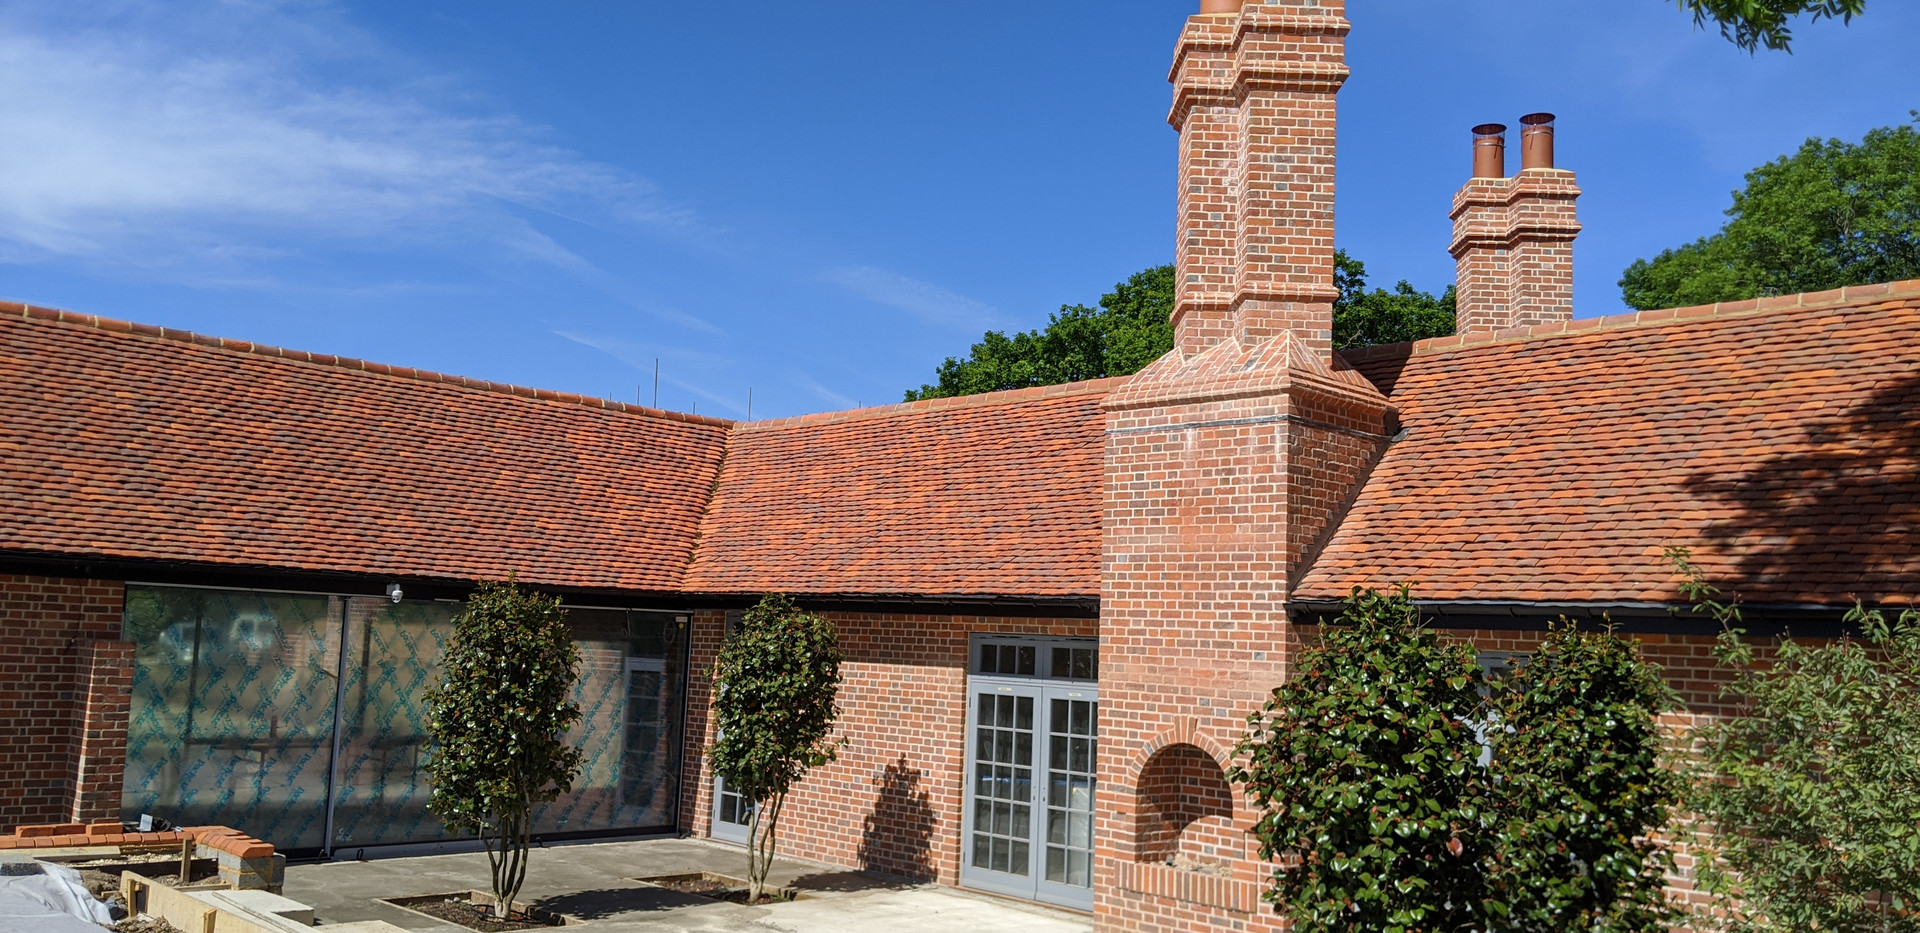 Clay Tile Roofing Wide Shot